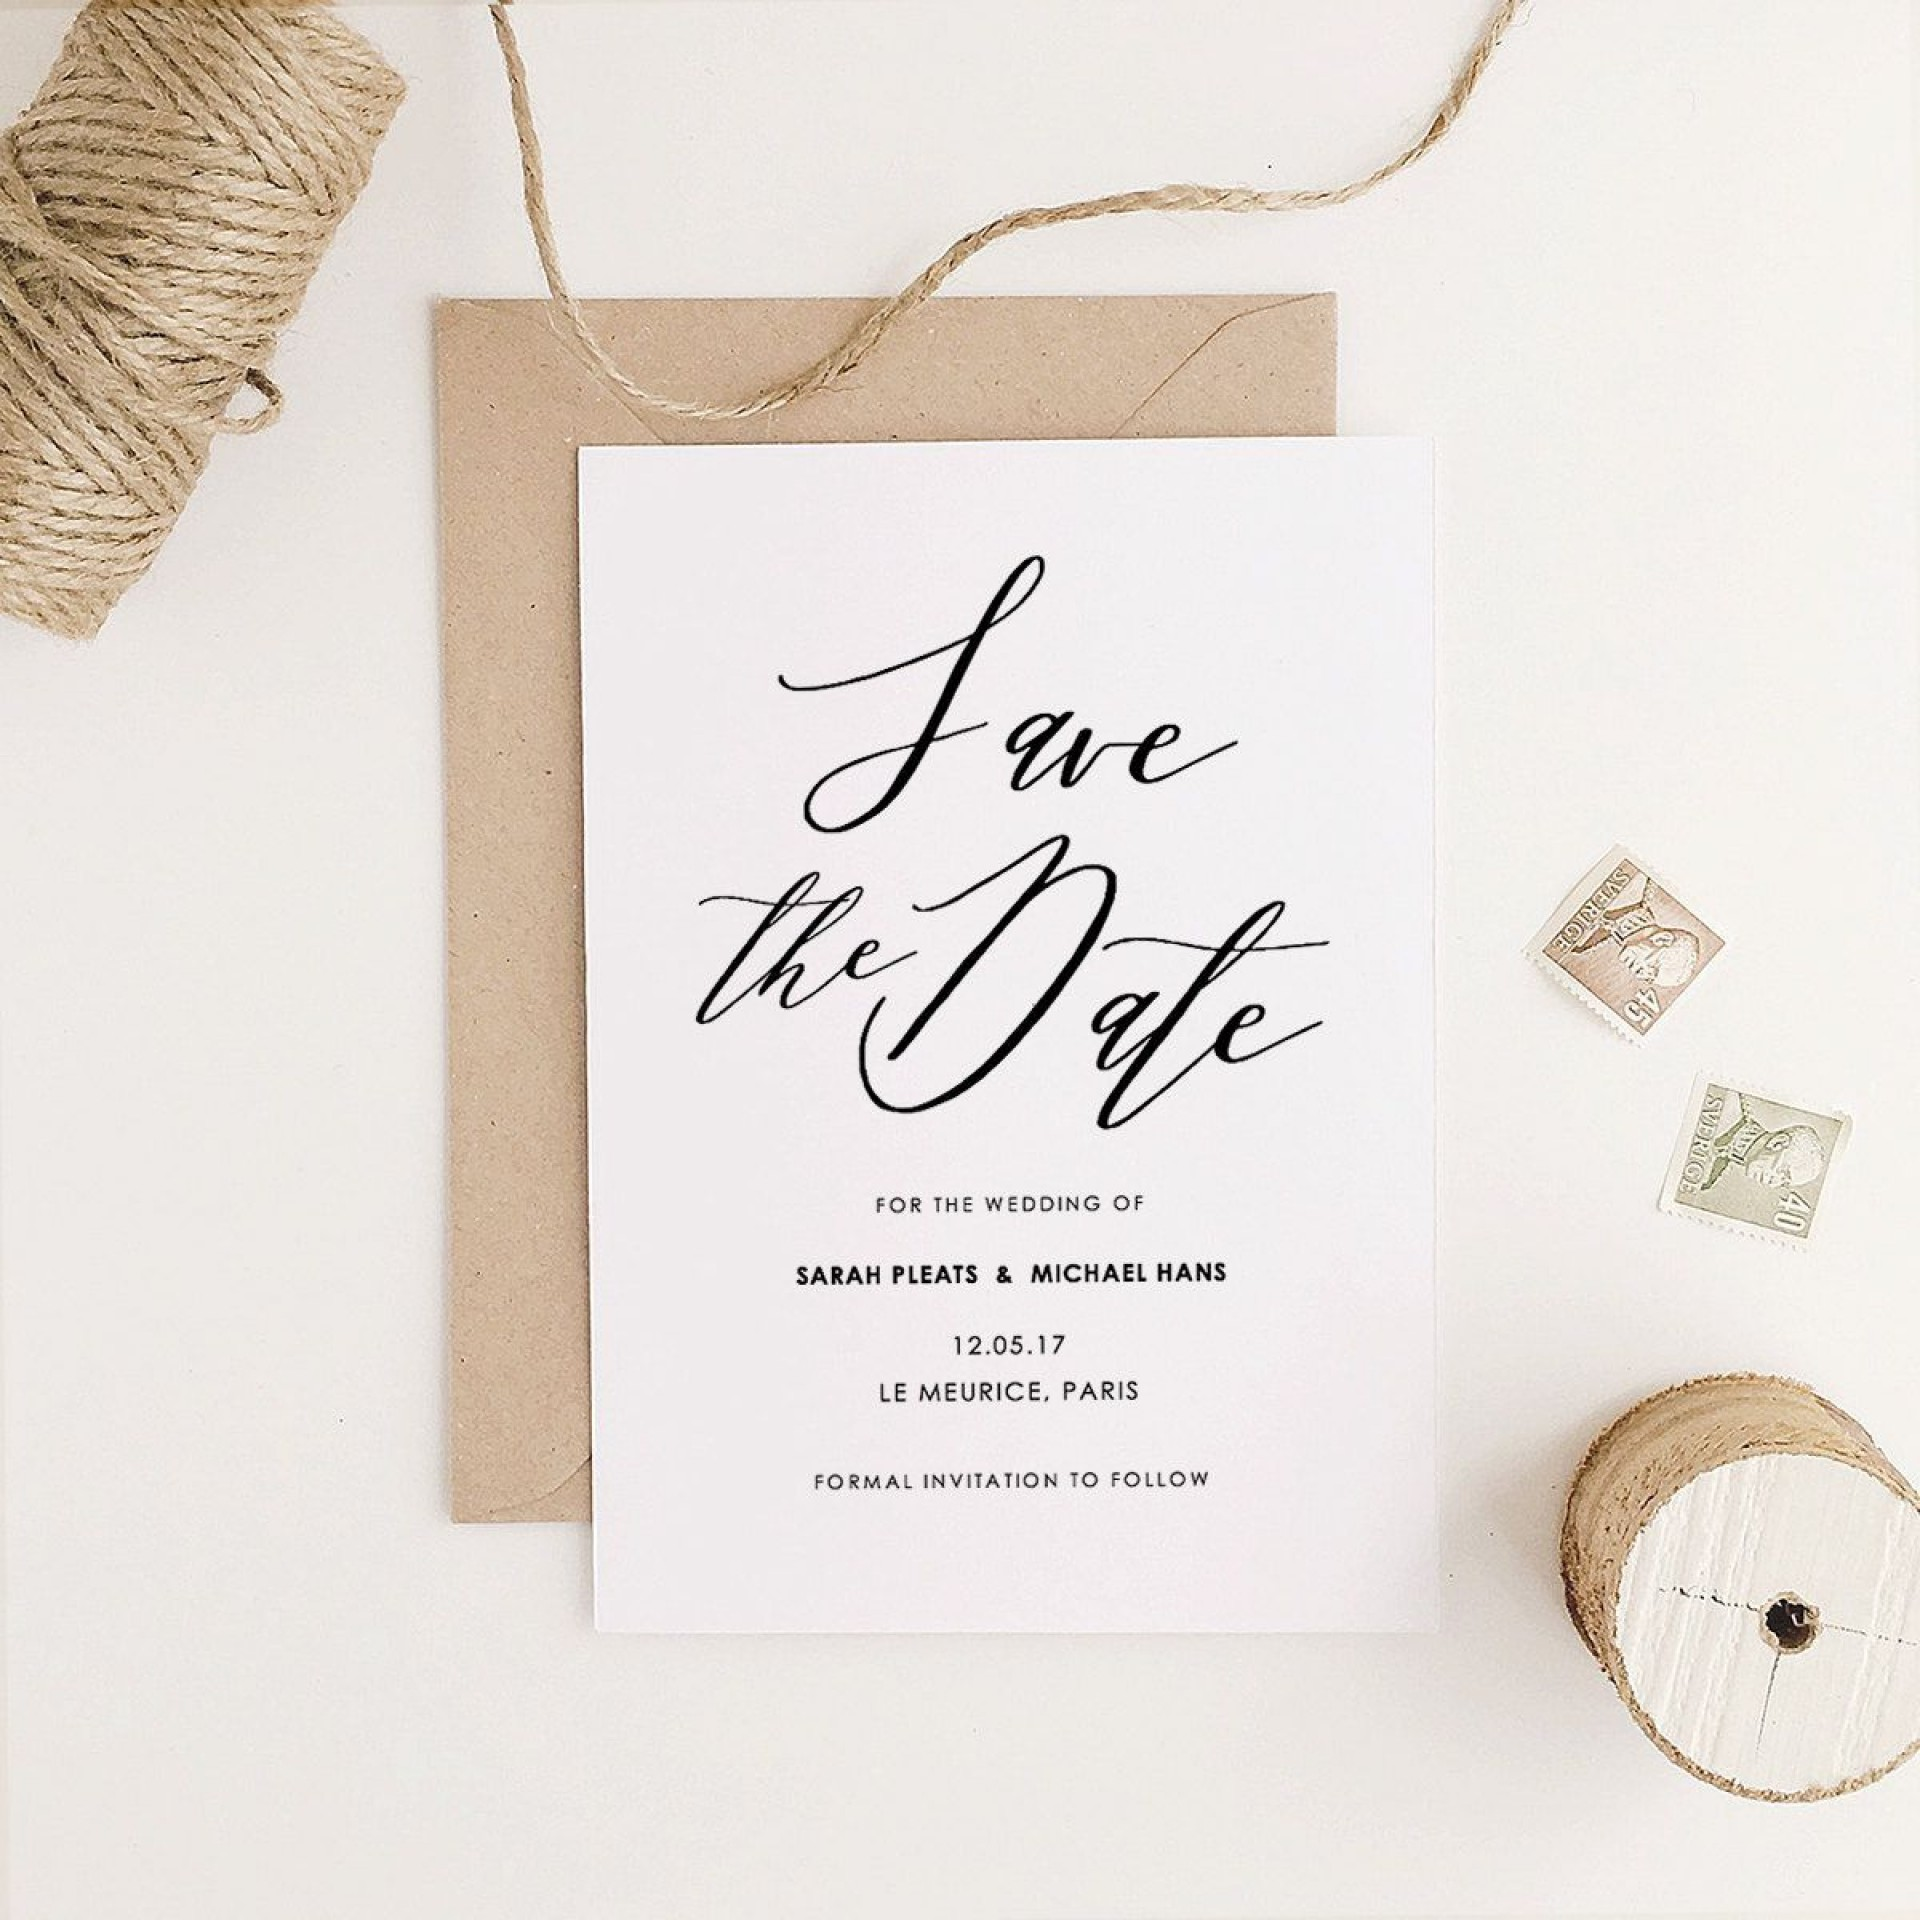 004 Striking Save The Date Template Word Highest Quality  Free Customizable For Holiday Party1920